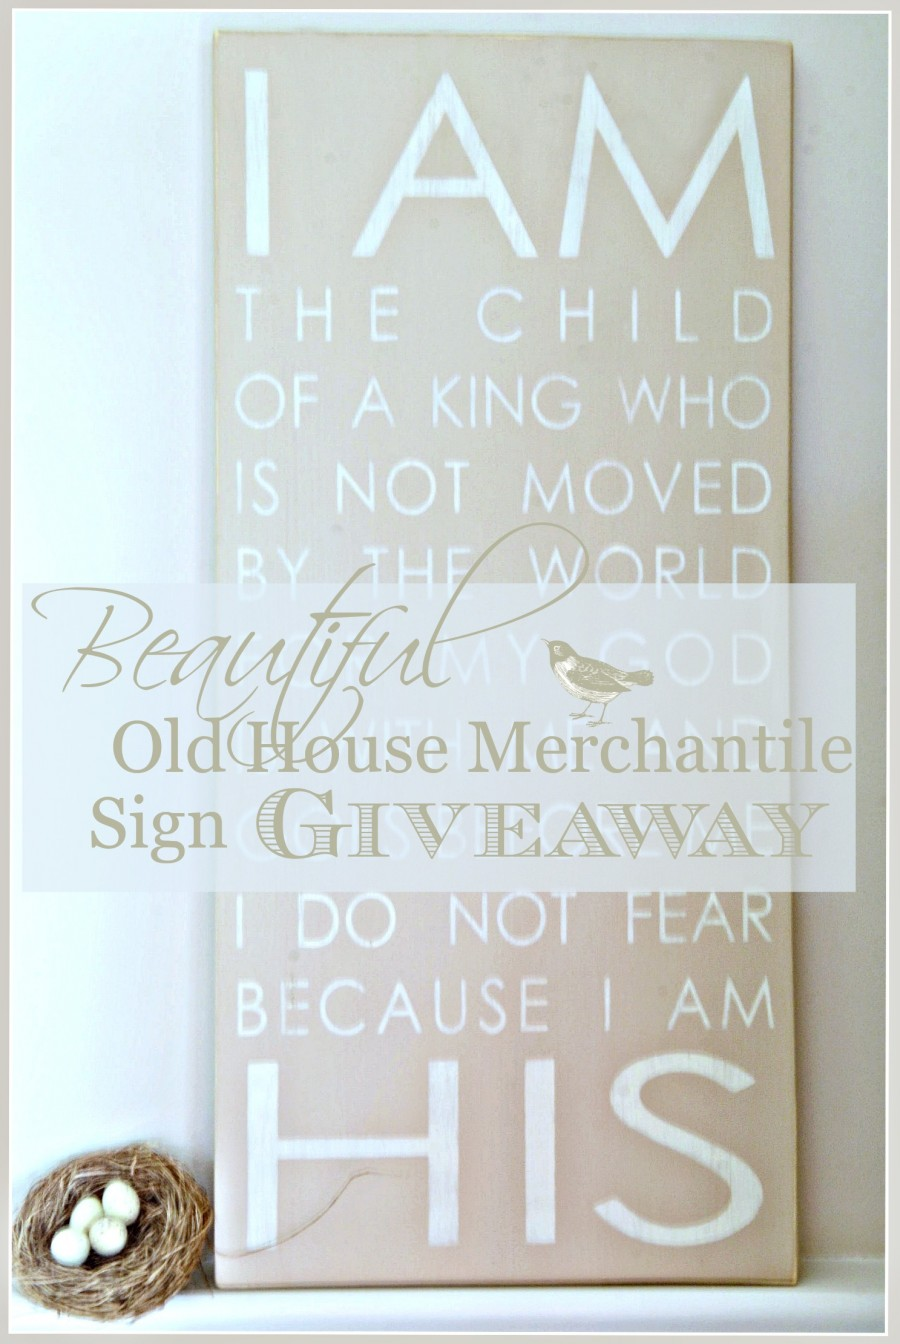 BEAUTIFUL OLD HOUSE MERCANTILE SIGN GIVEAWAY